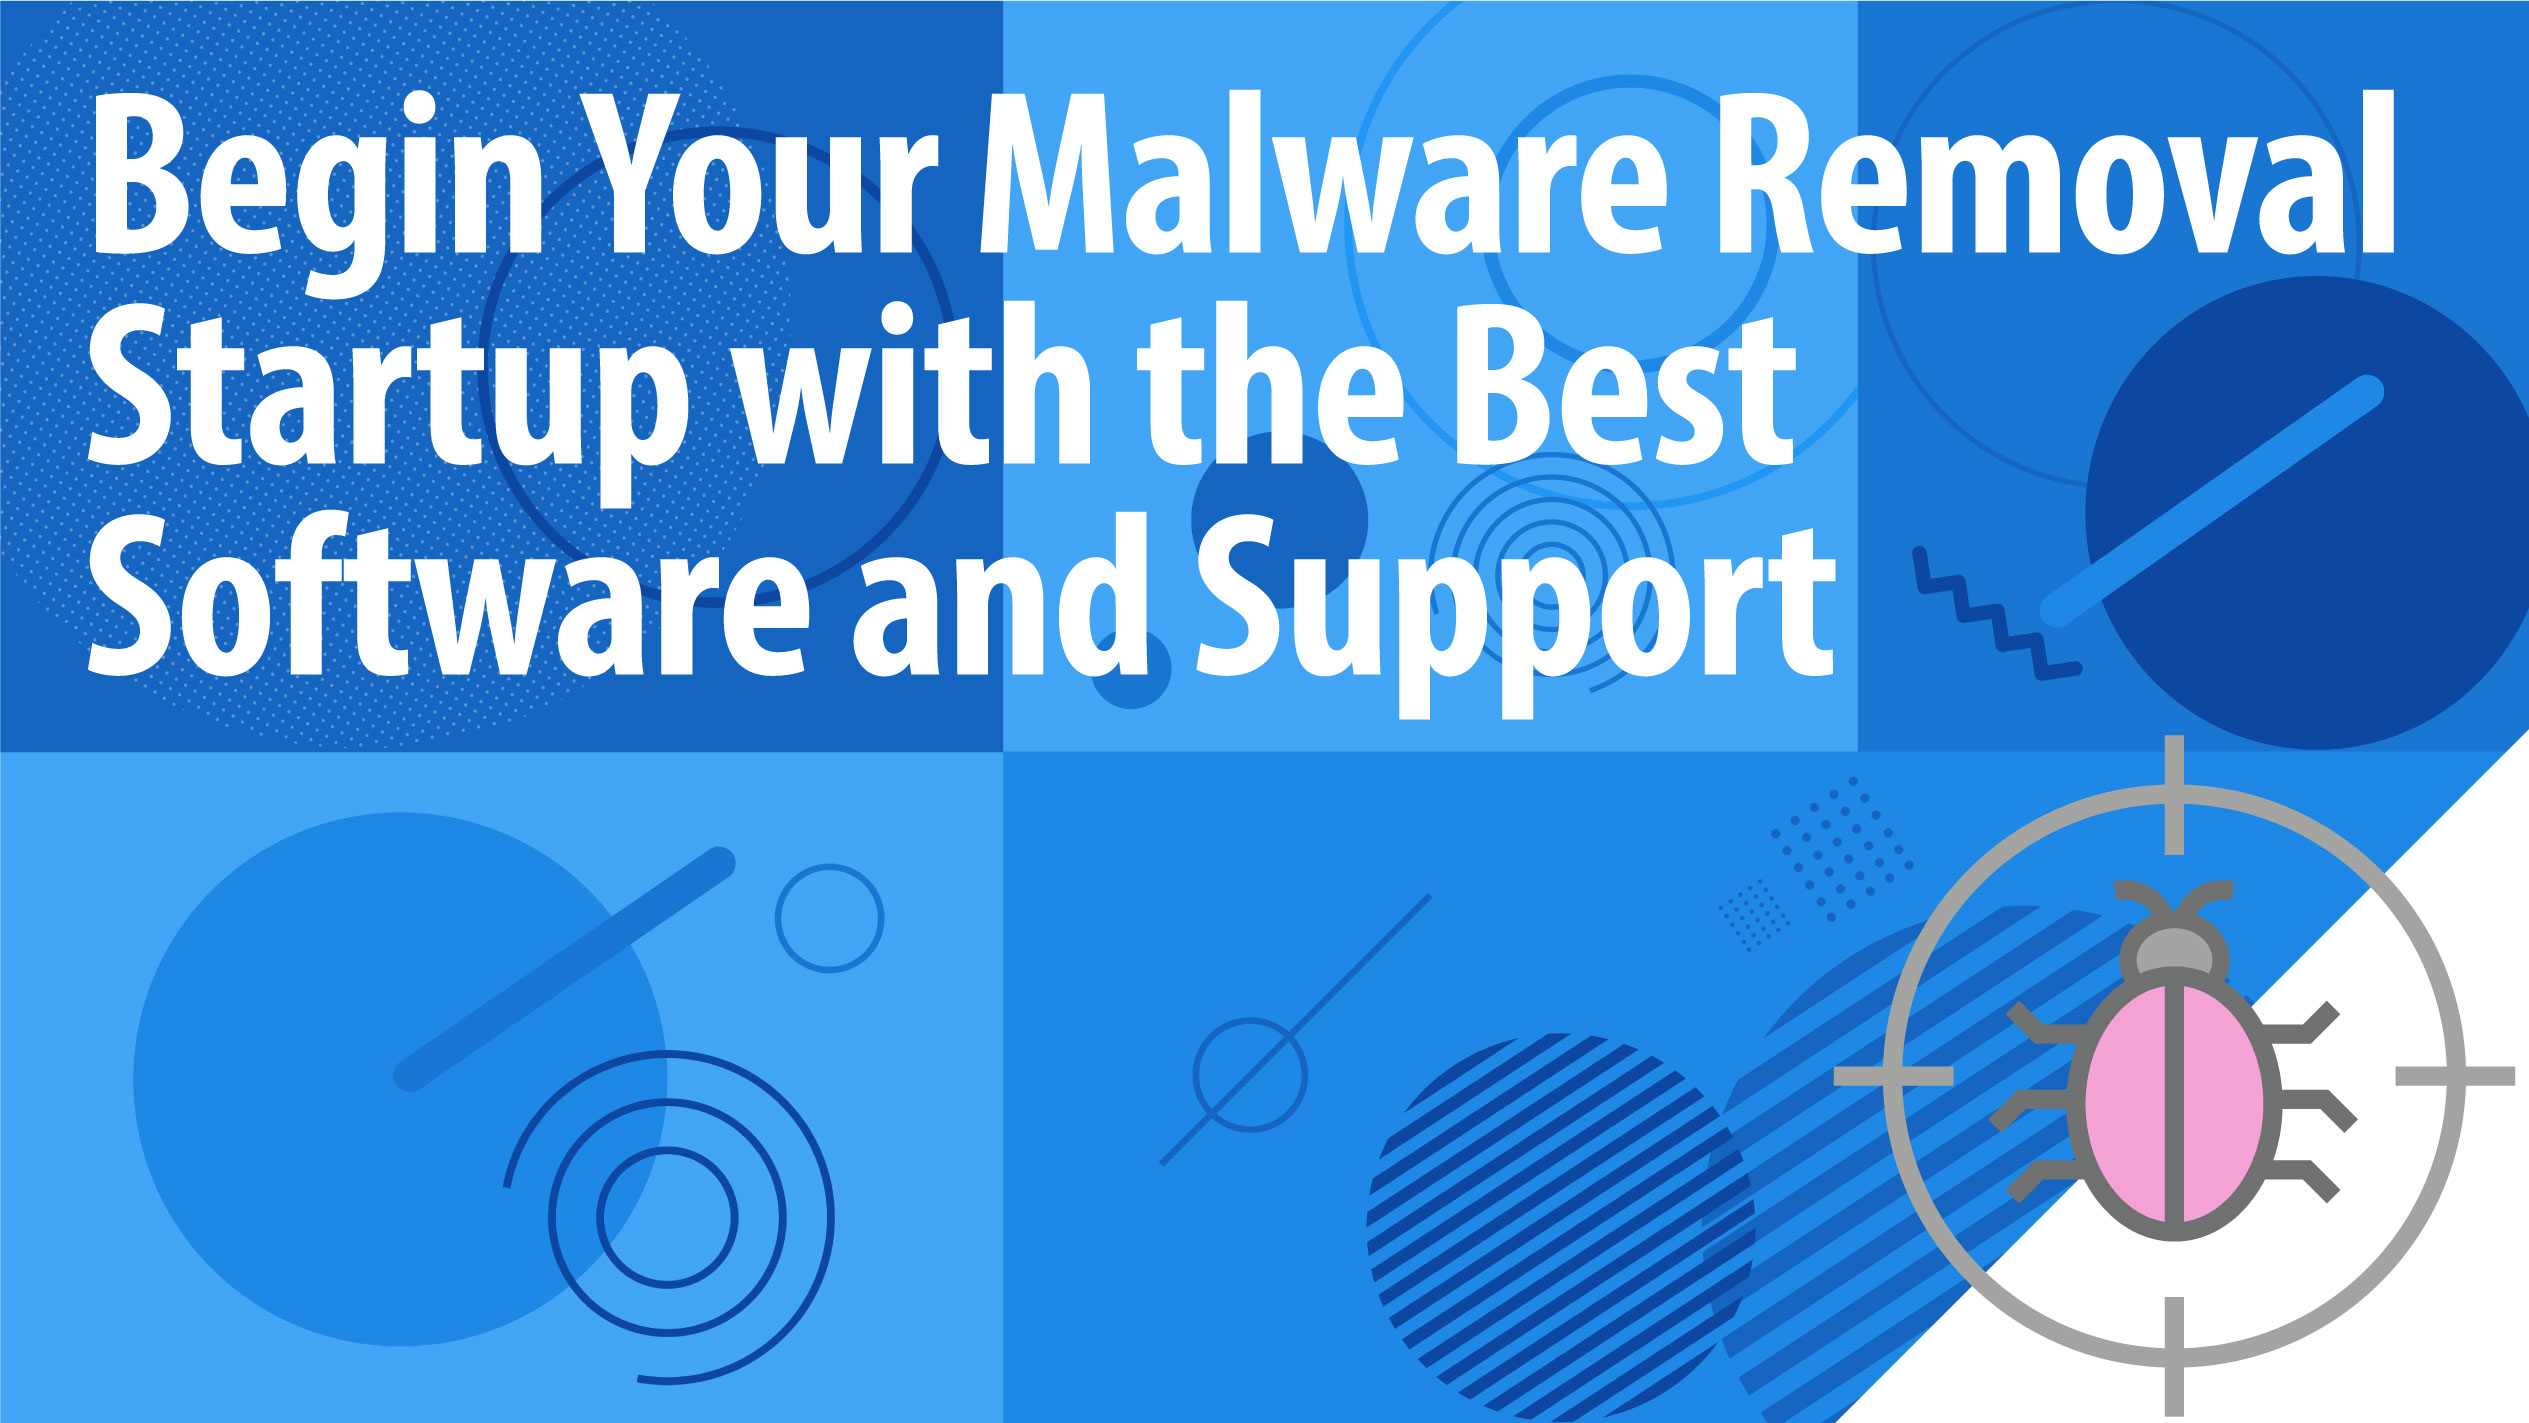 Begin Your Malware Removal Startup with the Best Software and Support